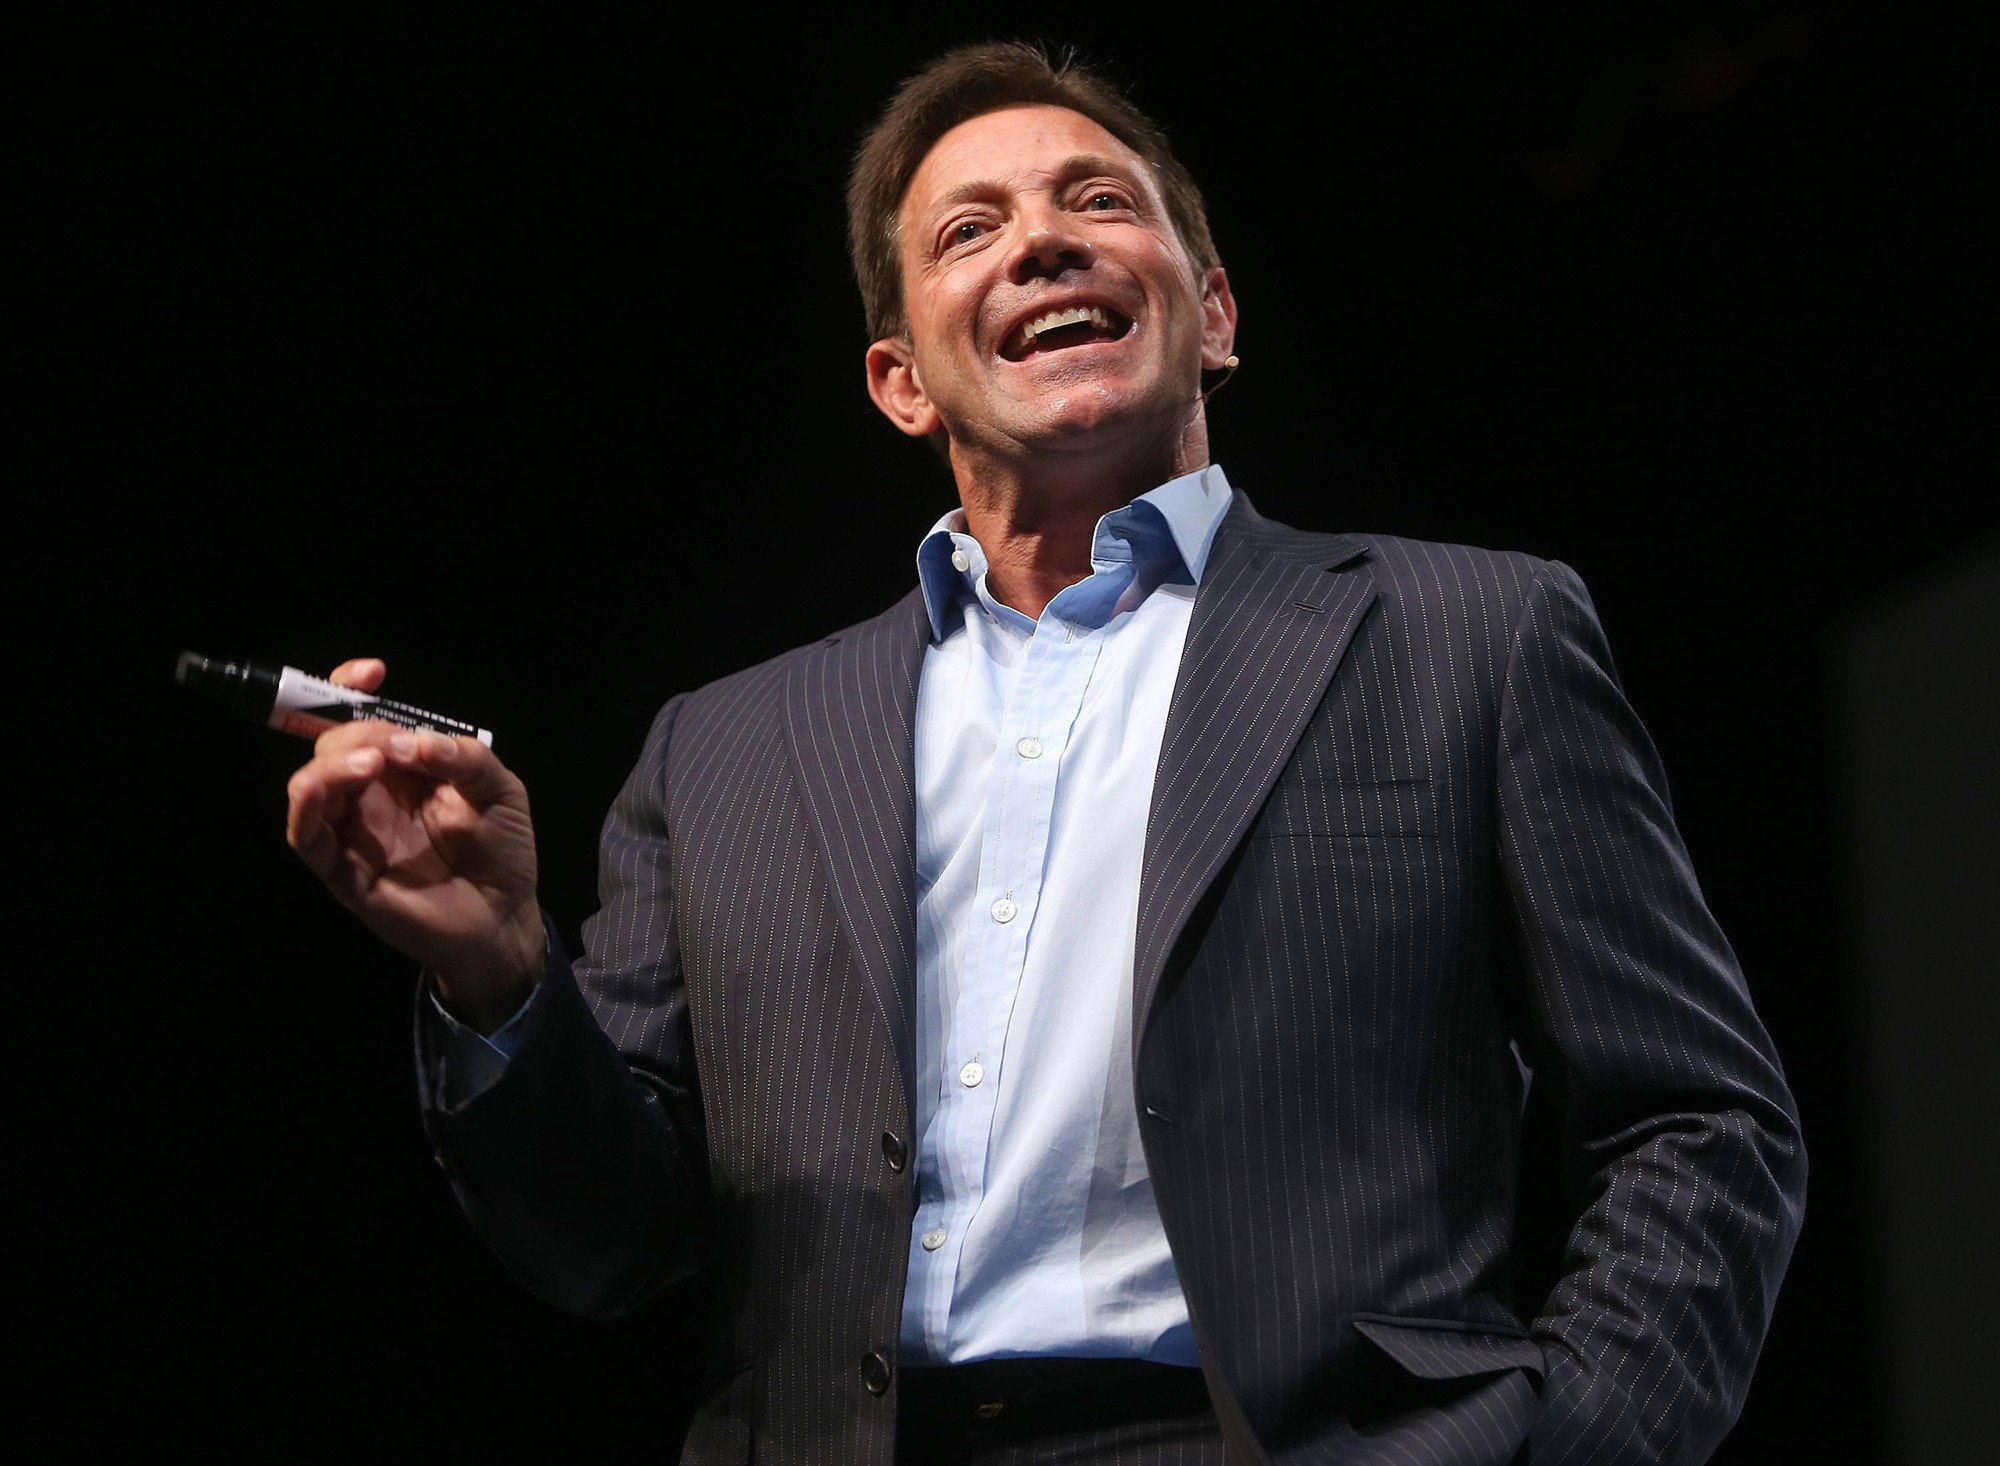 Jordan Belfort: Federal watchdogs gave bitcoin a boost